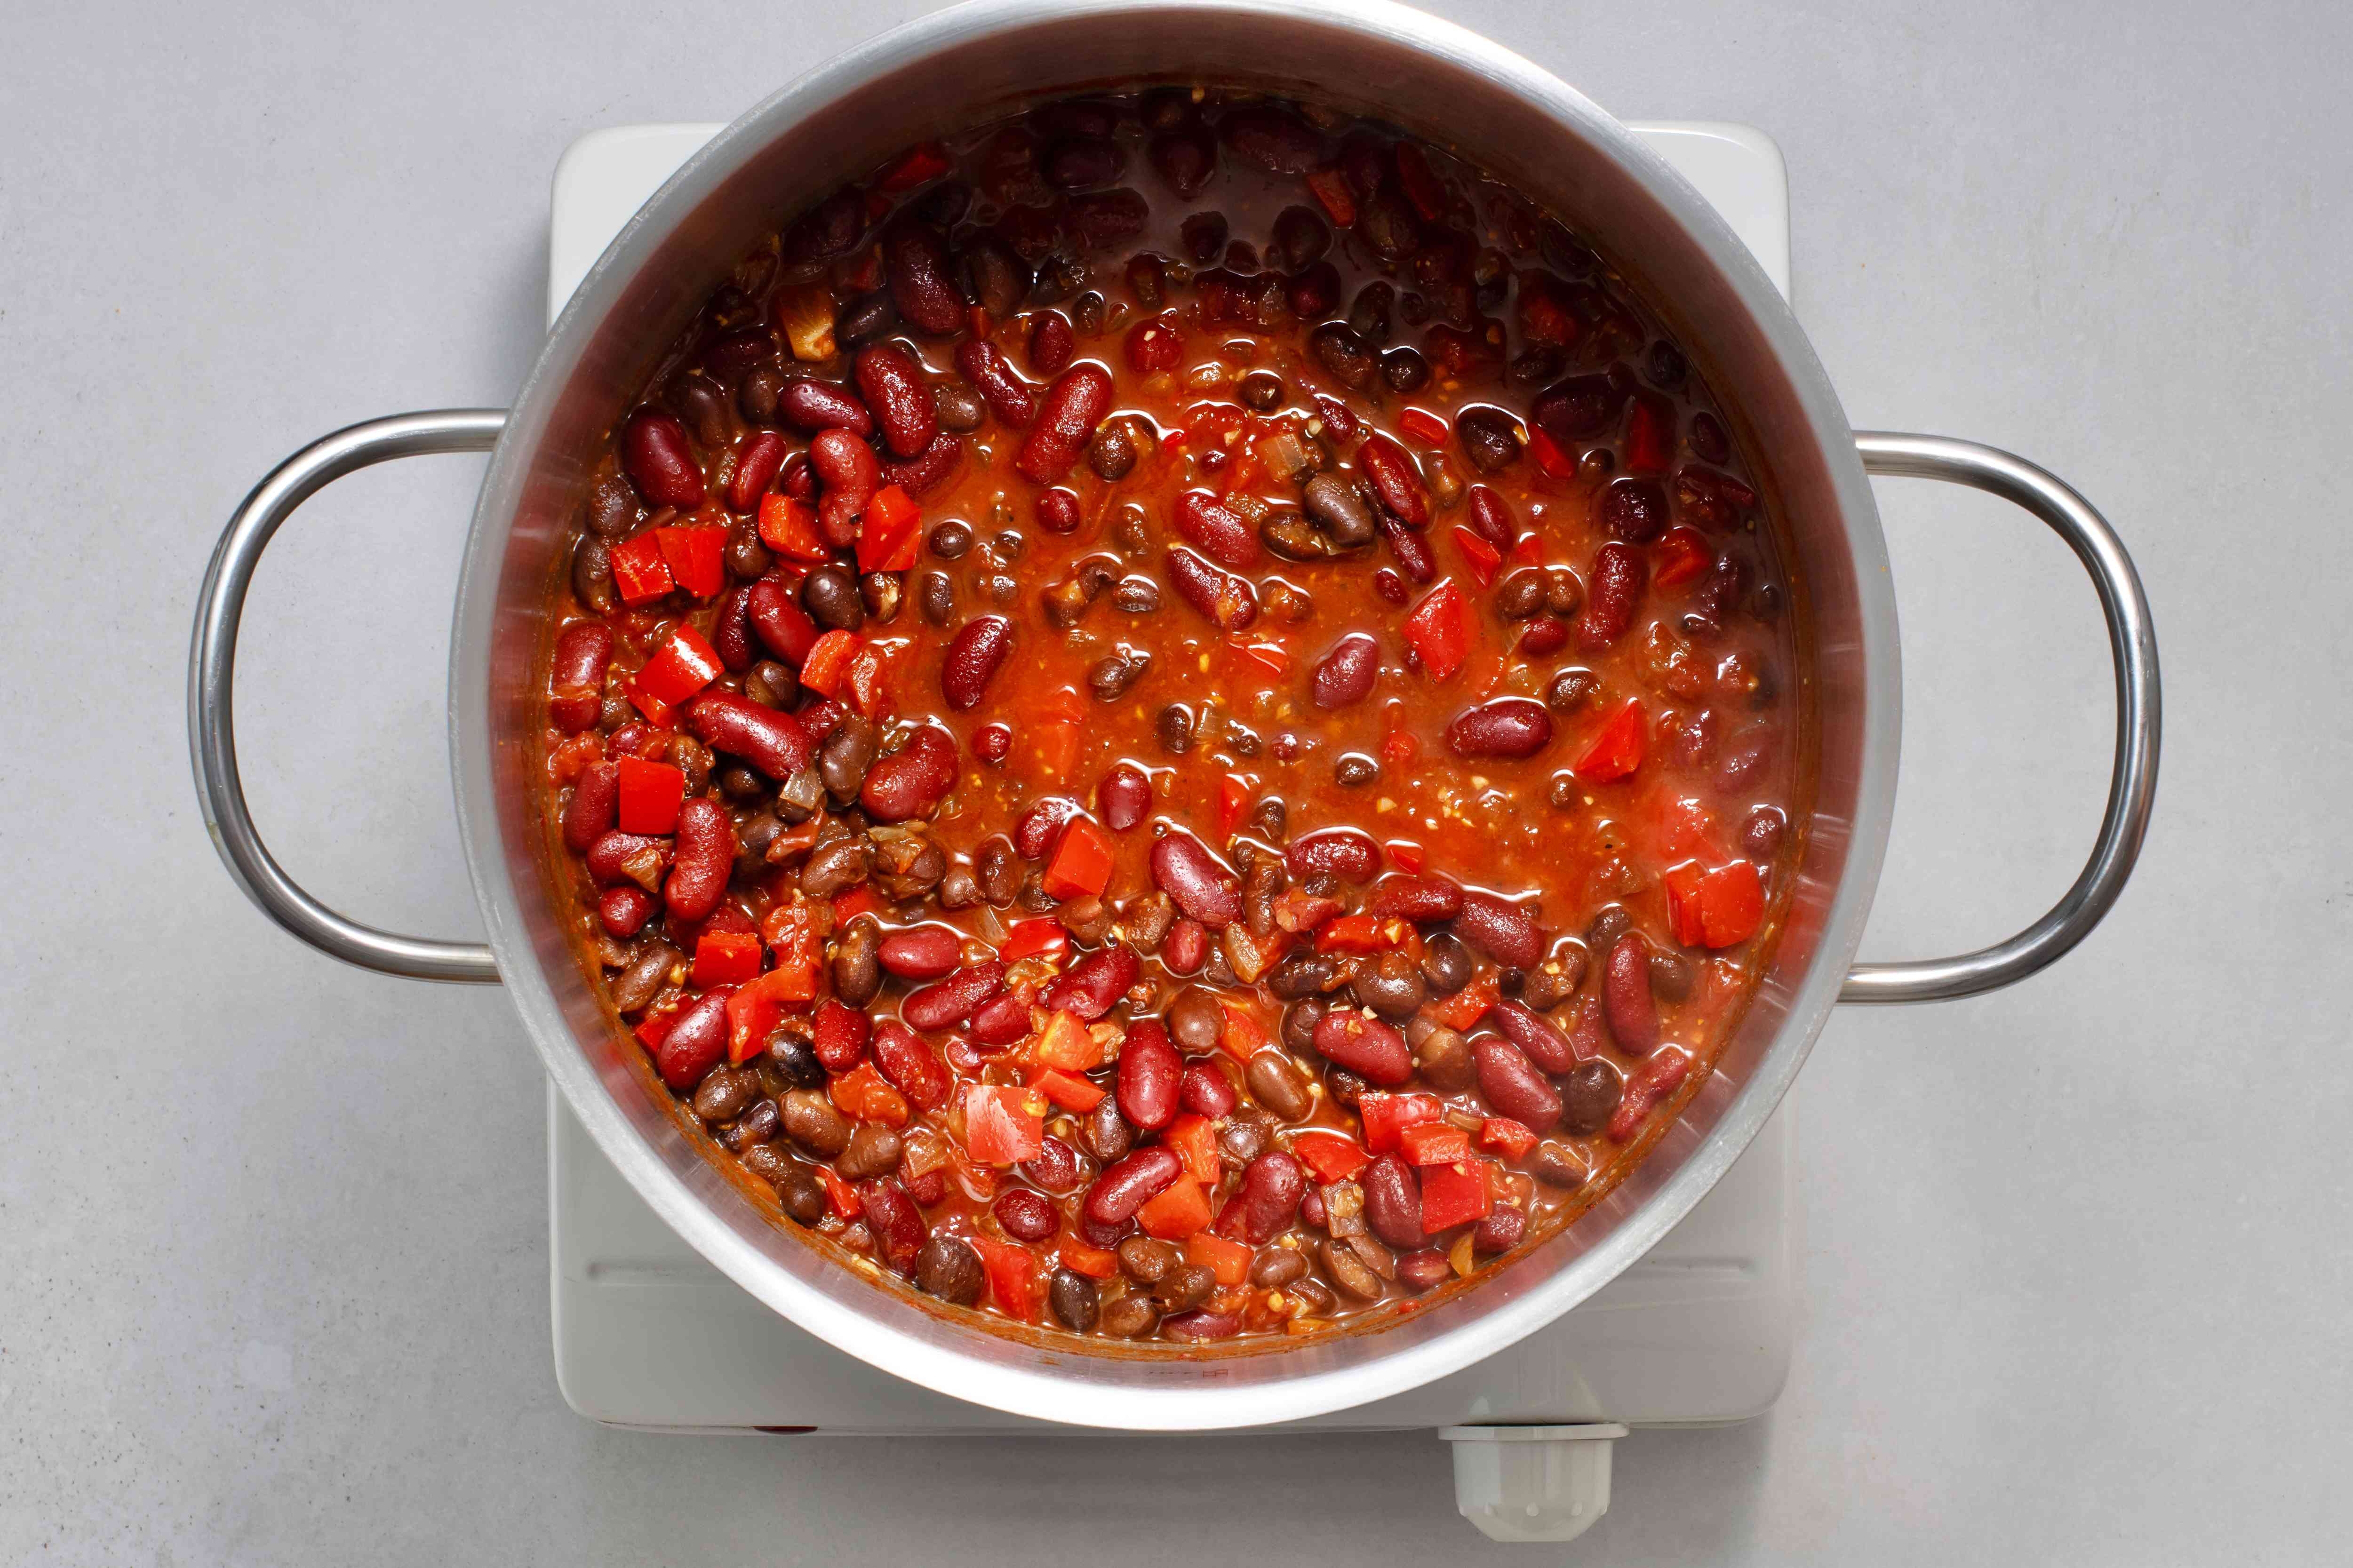 Chili ingredients in pan